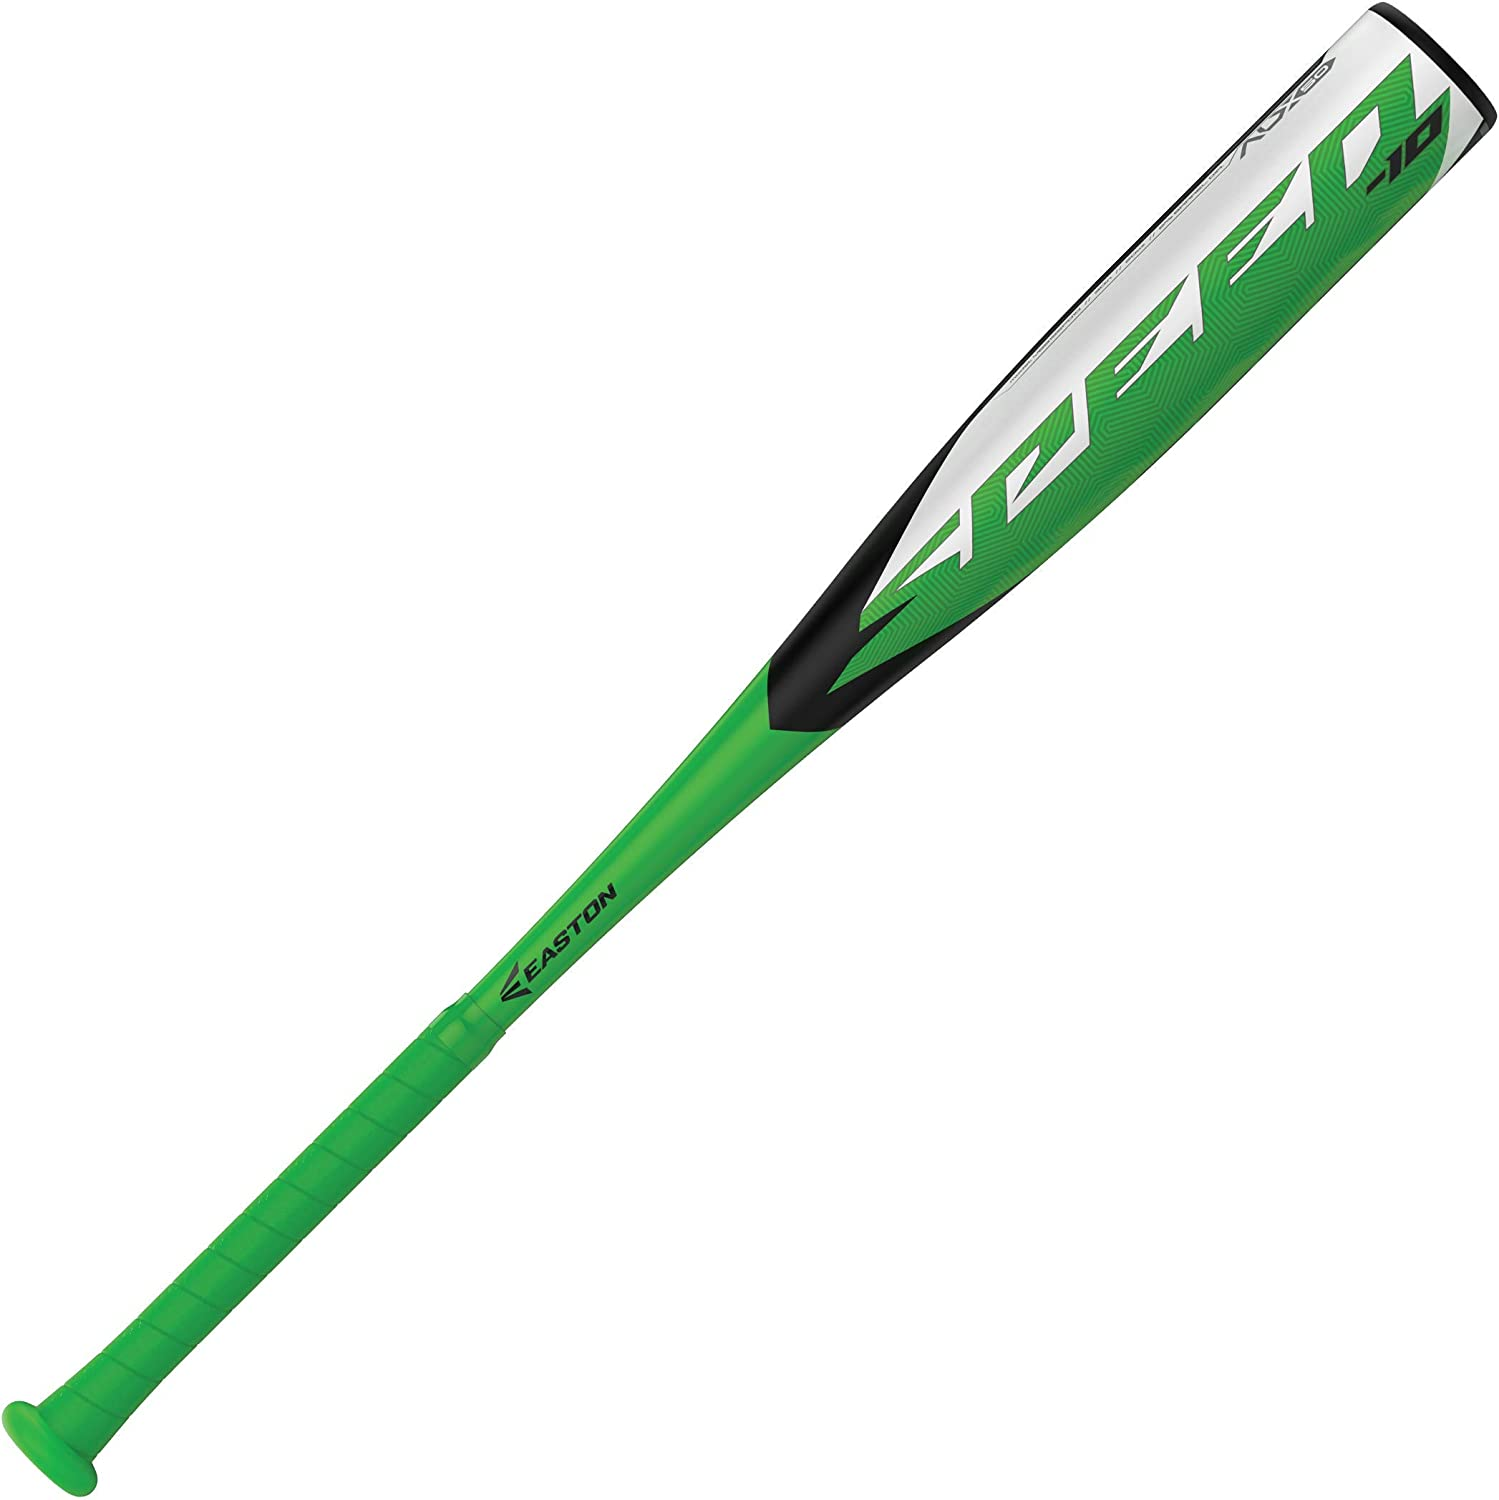 Easton Speed -10 USA Youth Baseball Bat, 2 5/8 inch Barrel, 2020, 1 Piece Aluminum, Lightweight ALX50 Military Grade Alloy, Pro Style Concave End Cap, Cushioned 2.2mm Flex Grip